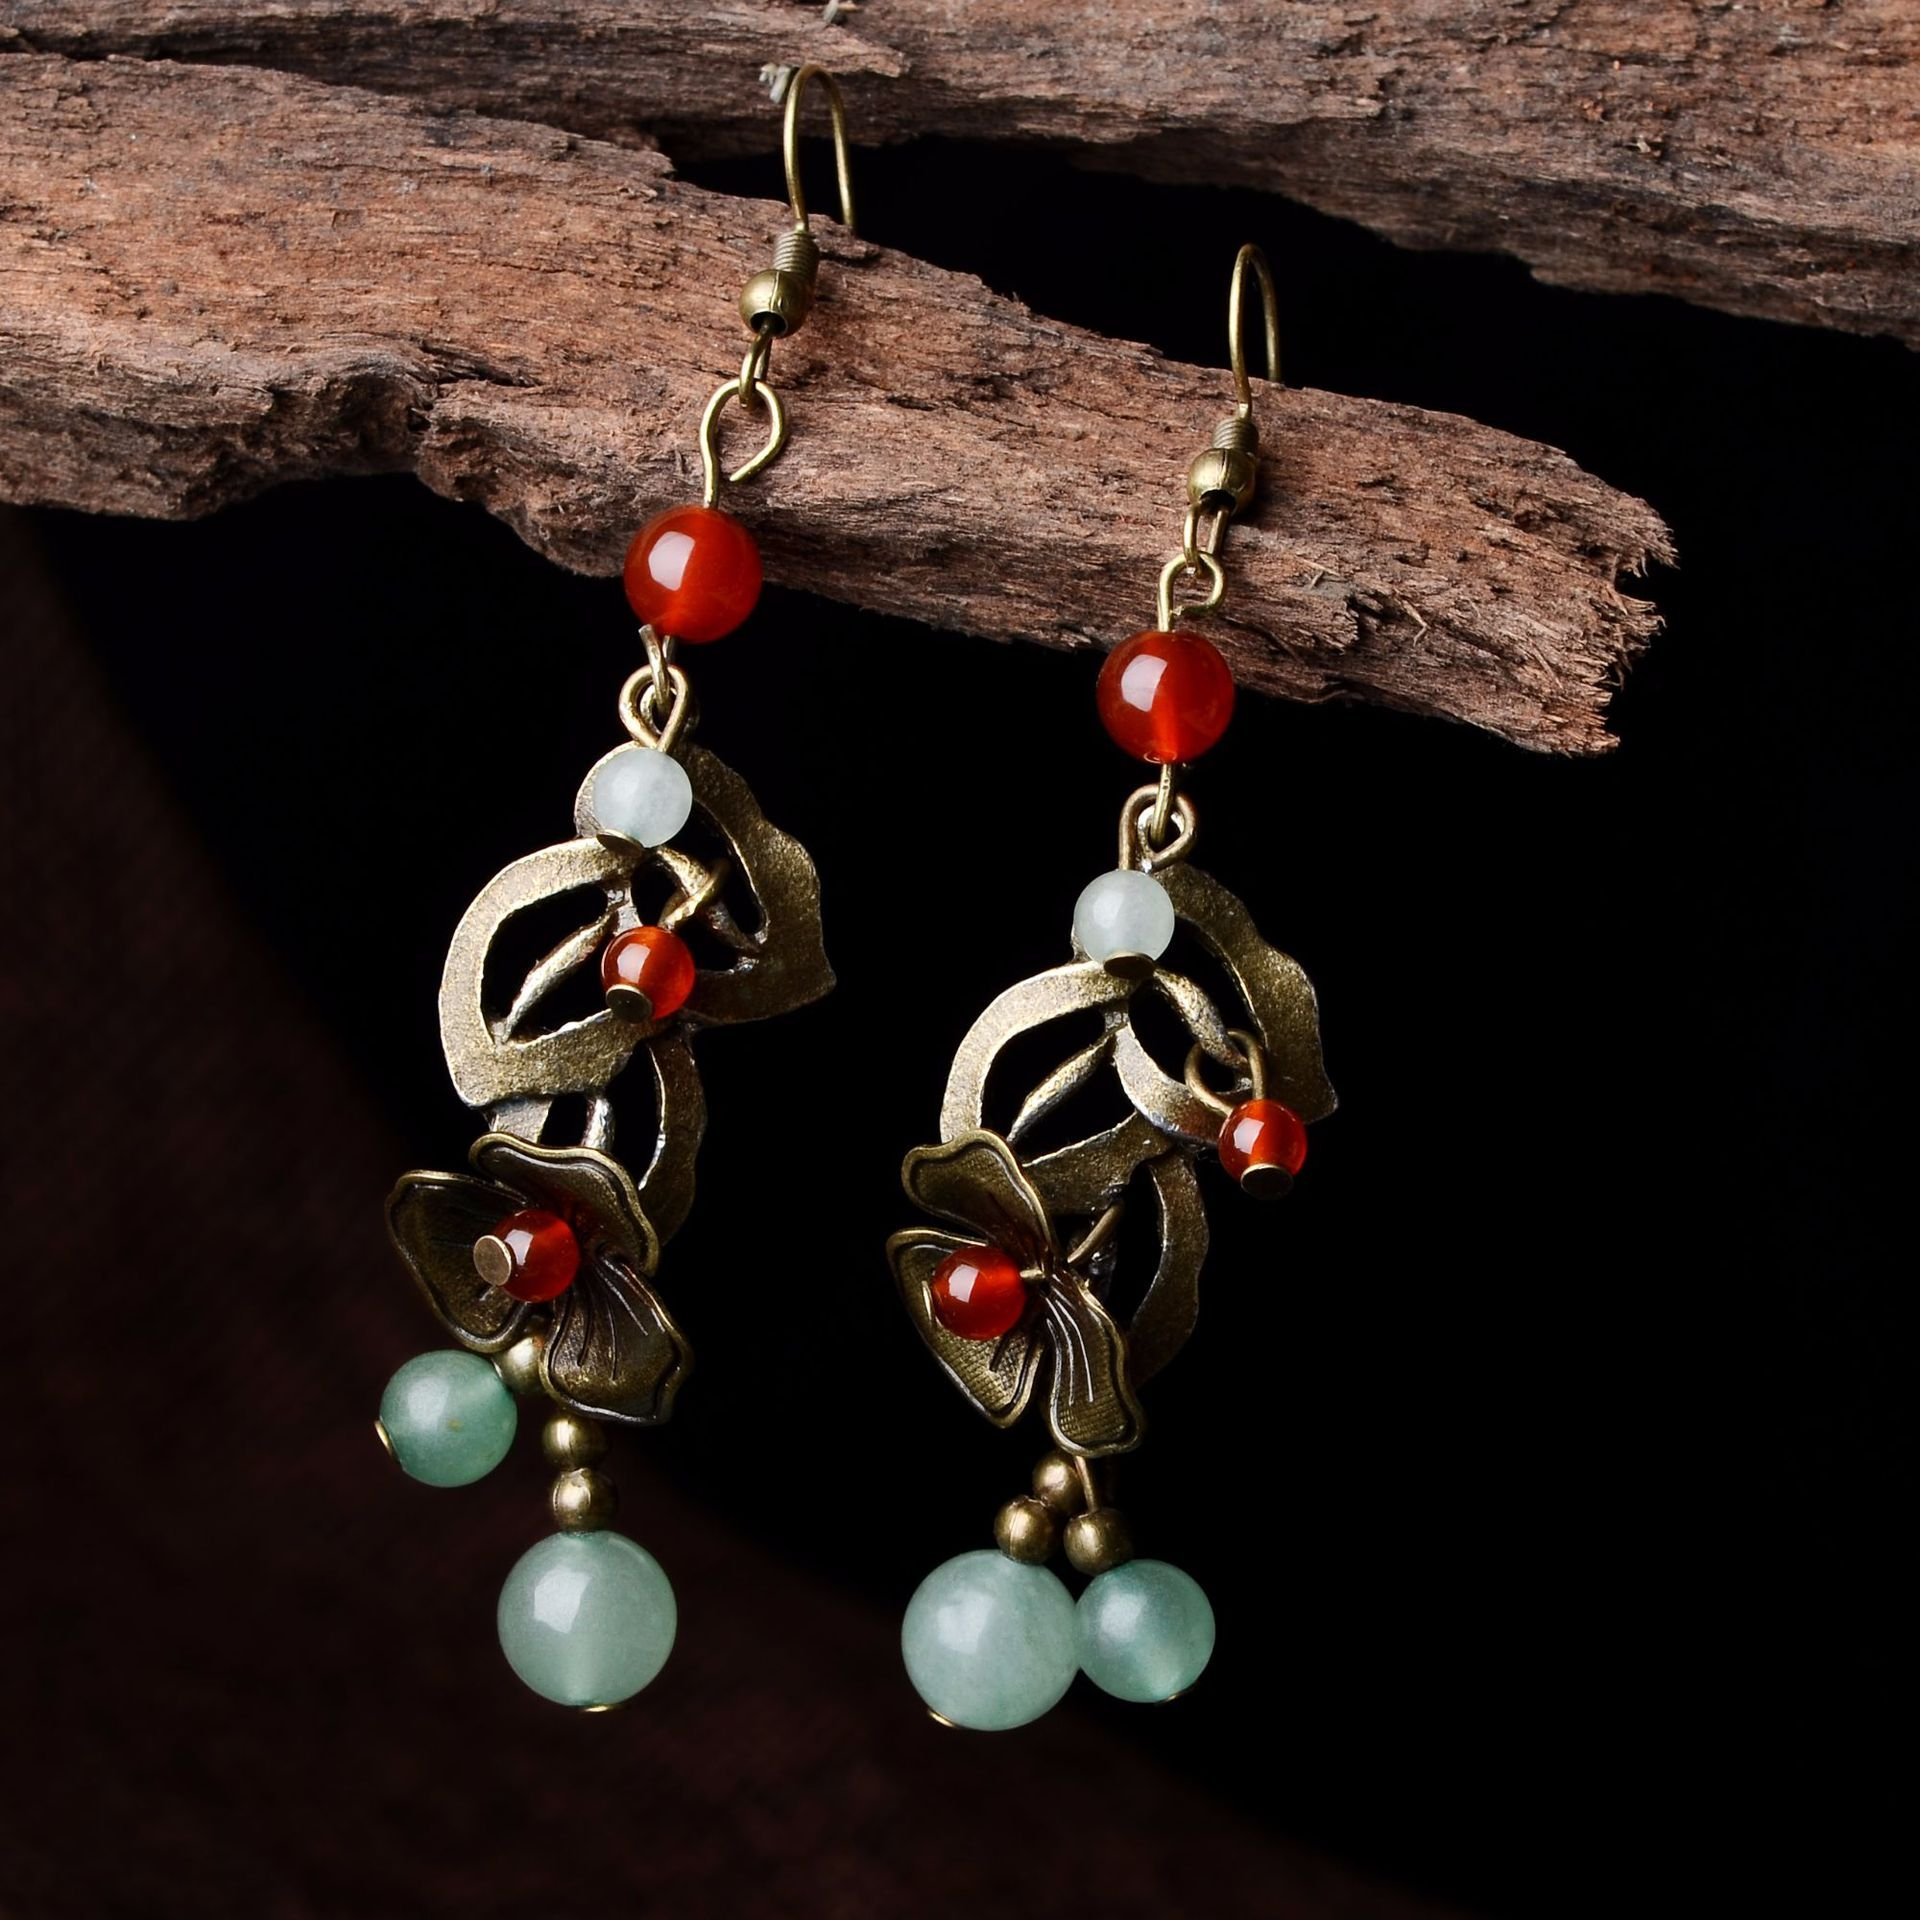 Vintage Red Agate Bronze Flower Ear Drop Ethnic Beaded Tassel Earrings for Women Jewelry Gift